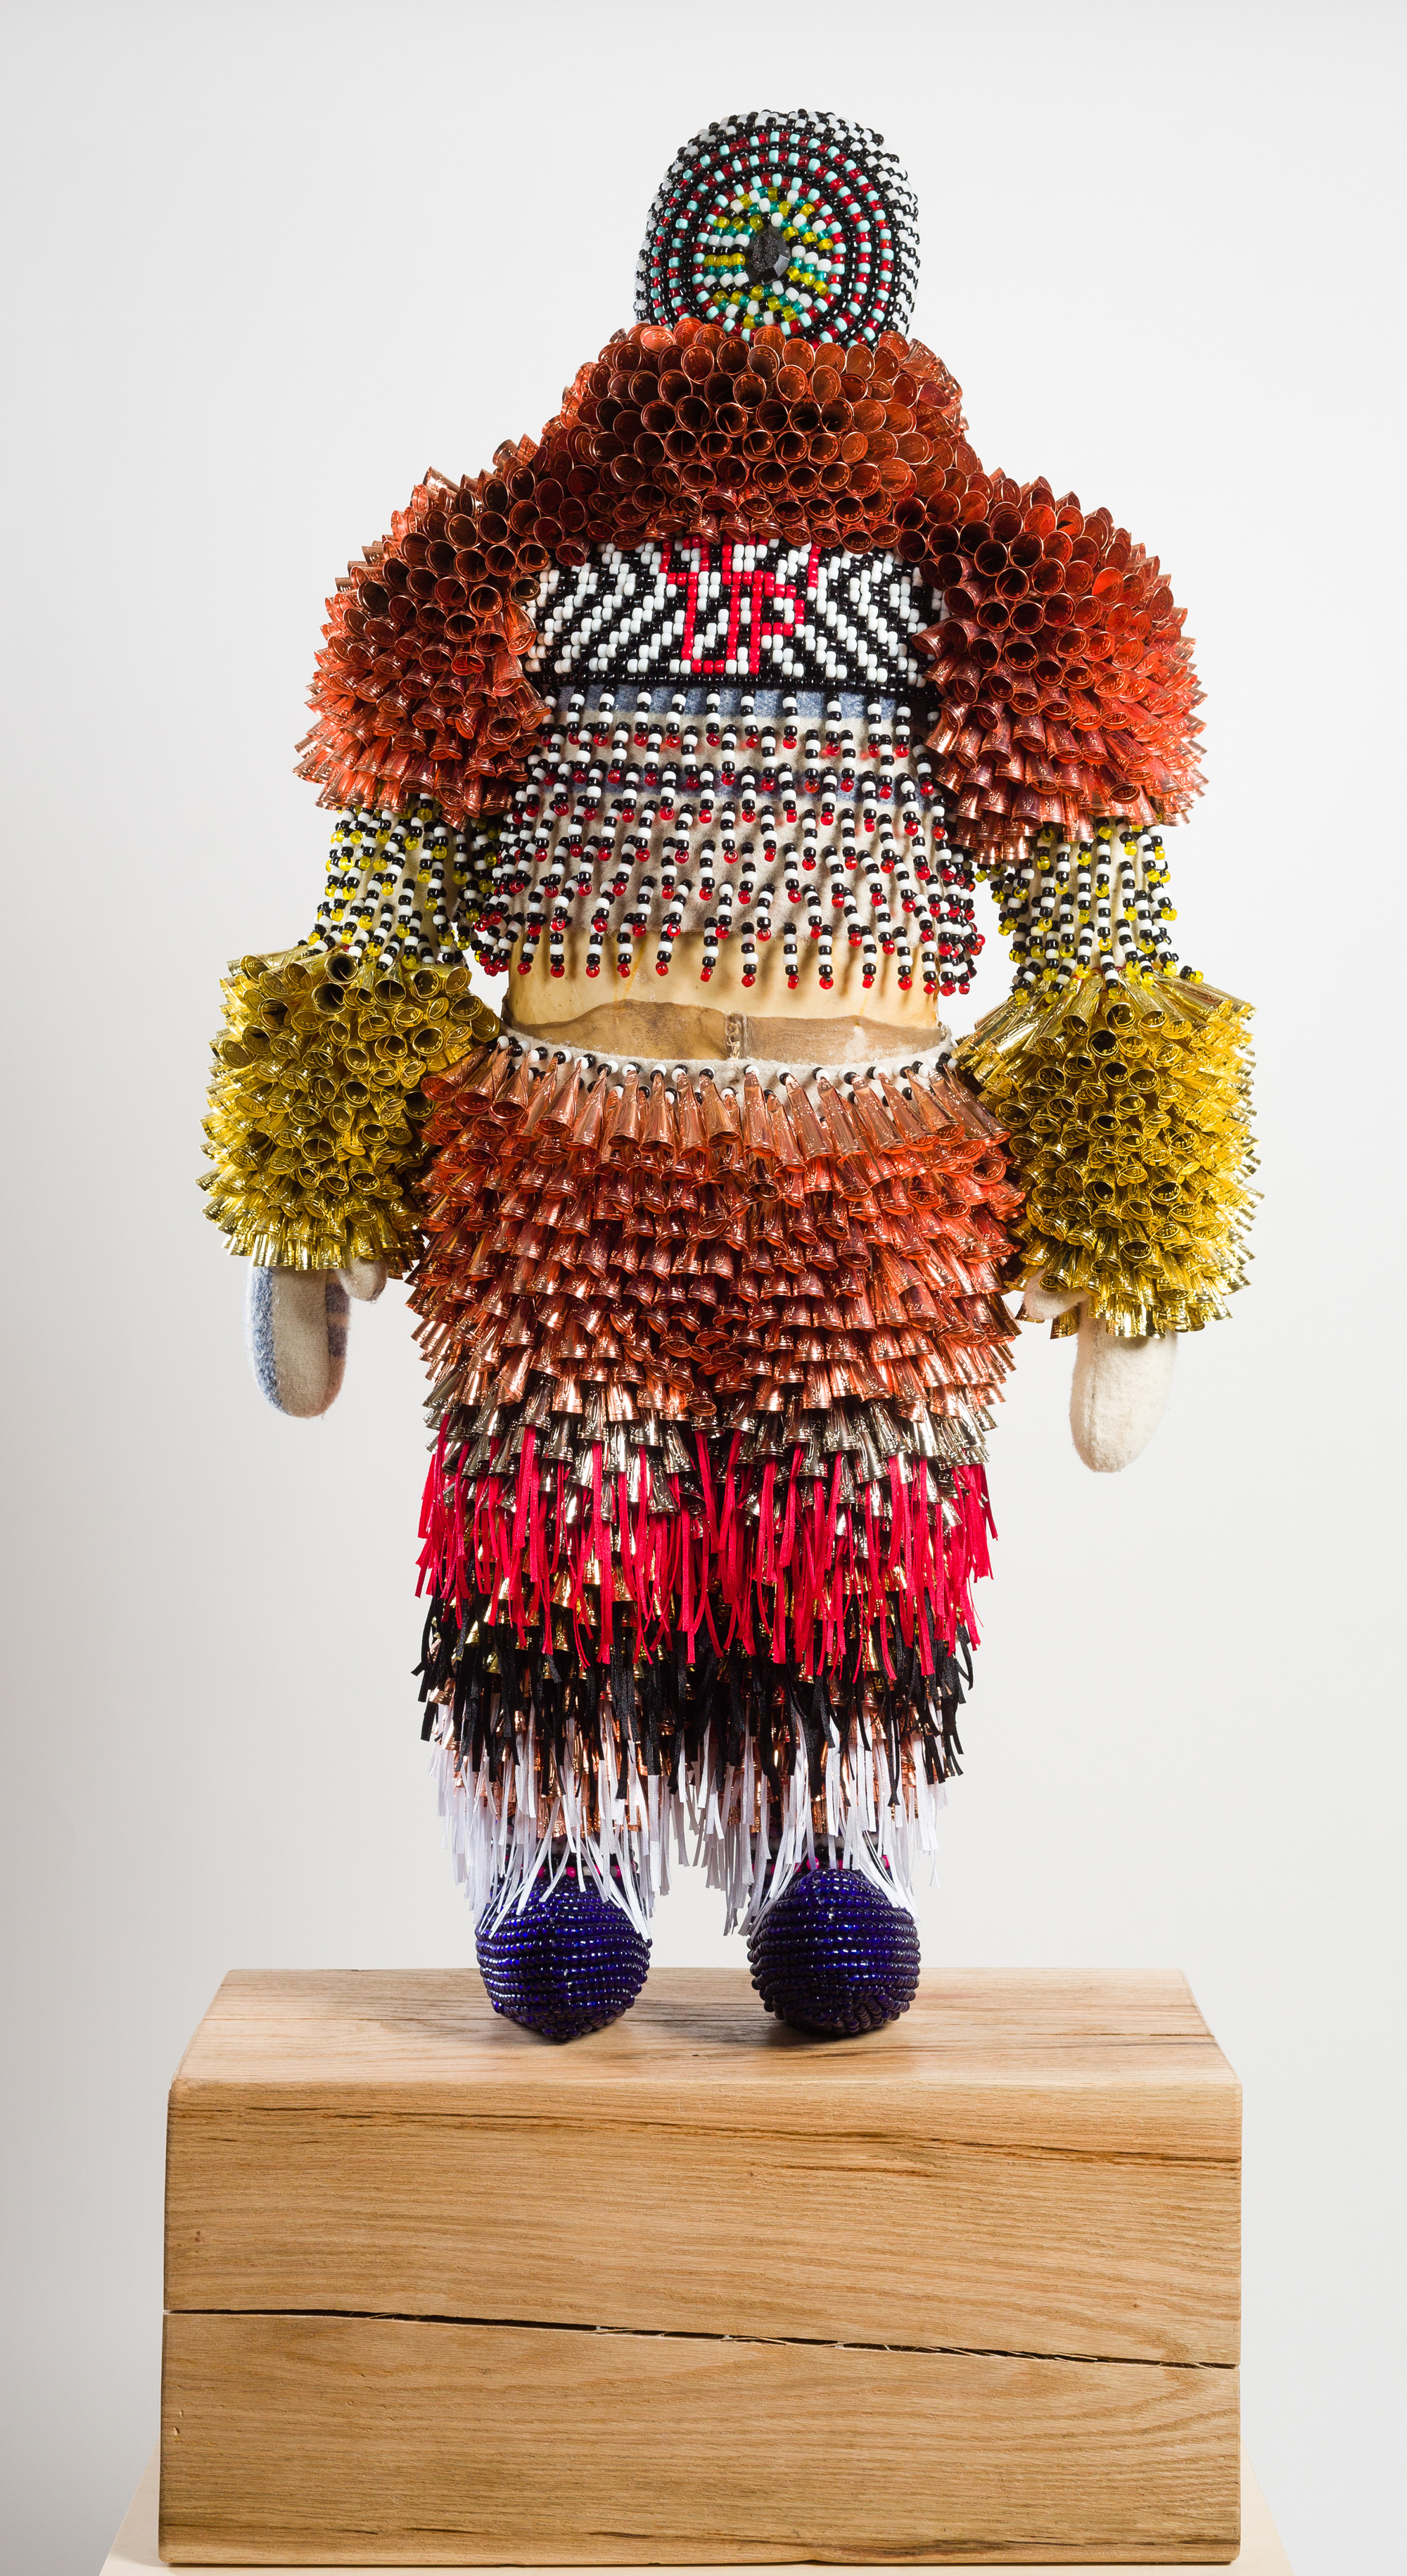 2016 Recycled wool, glass beads, artificial sinew, druzy agate stone, copper jingles, nylon fringe, repurposed wood block, custom maple pedestal 85 x 28 x 12 inches (216 x 71 x 30.5 cm) with pedestal - Marc Straus Gallery